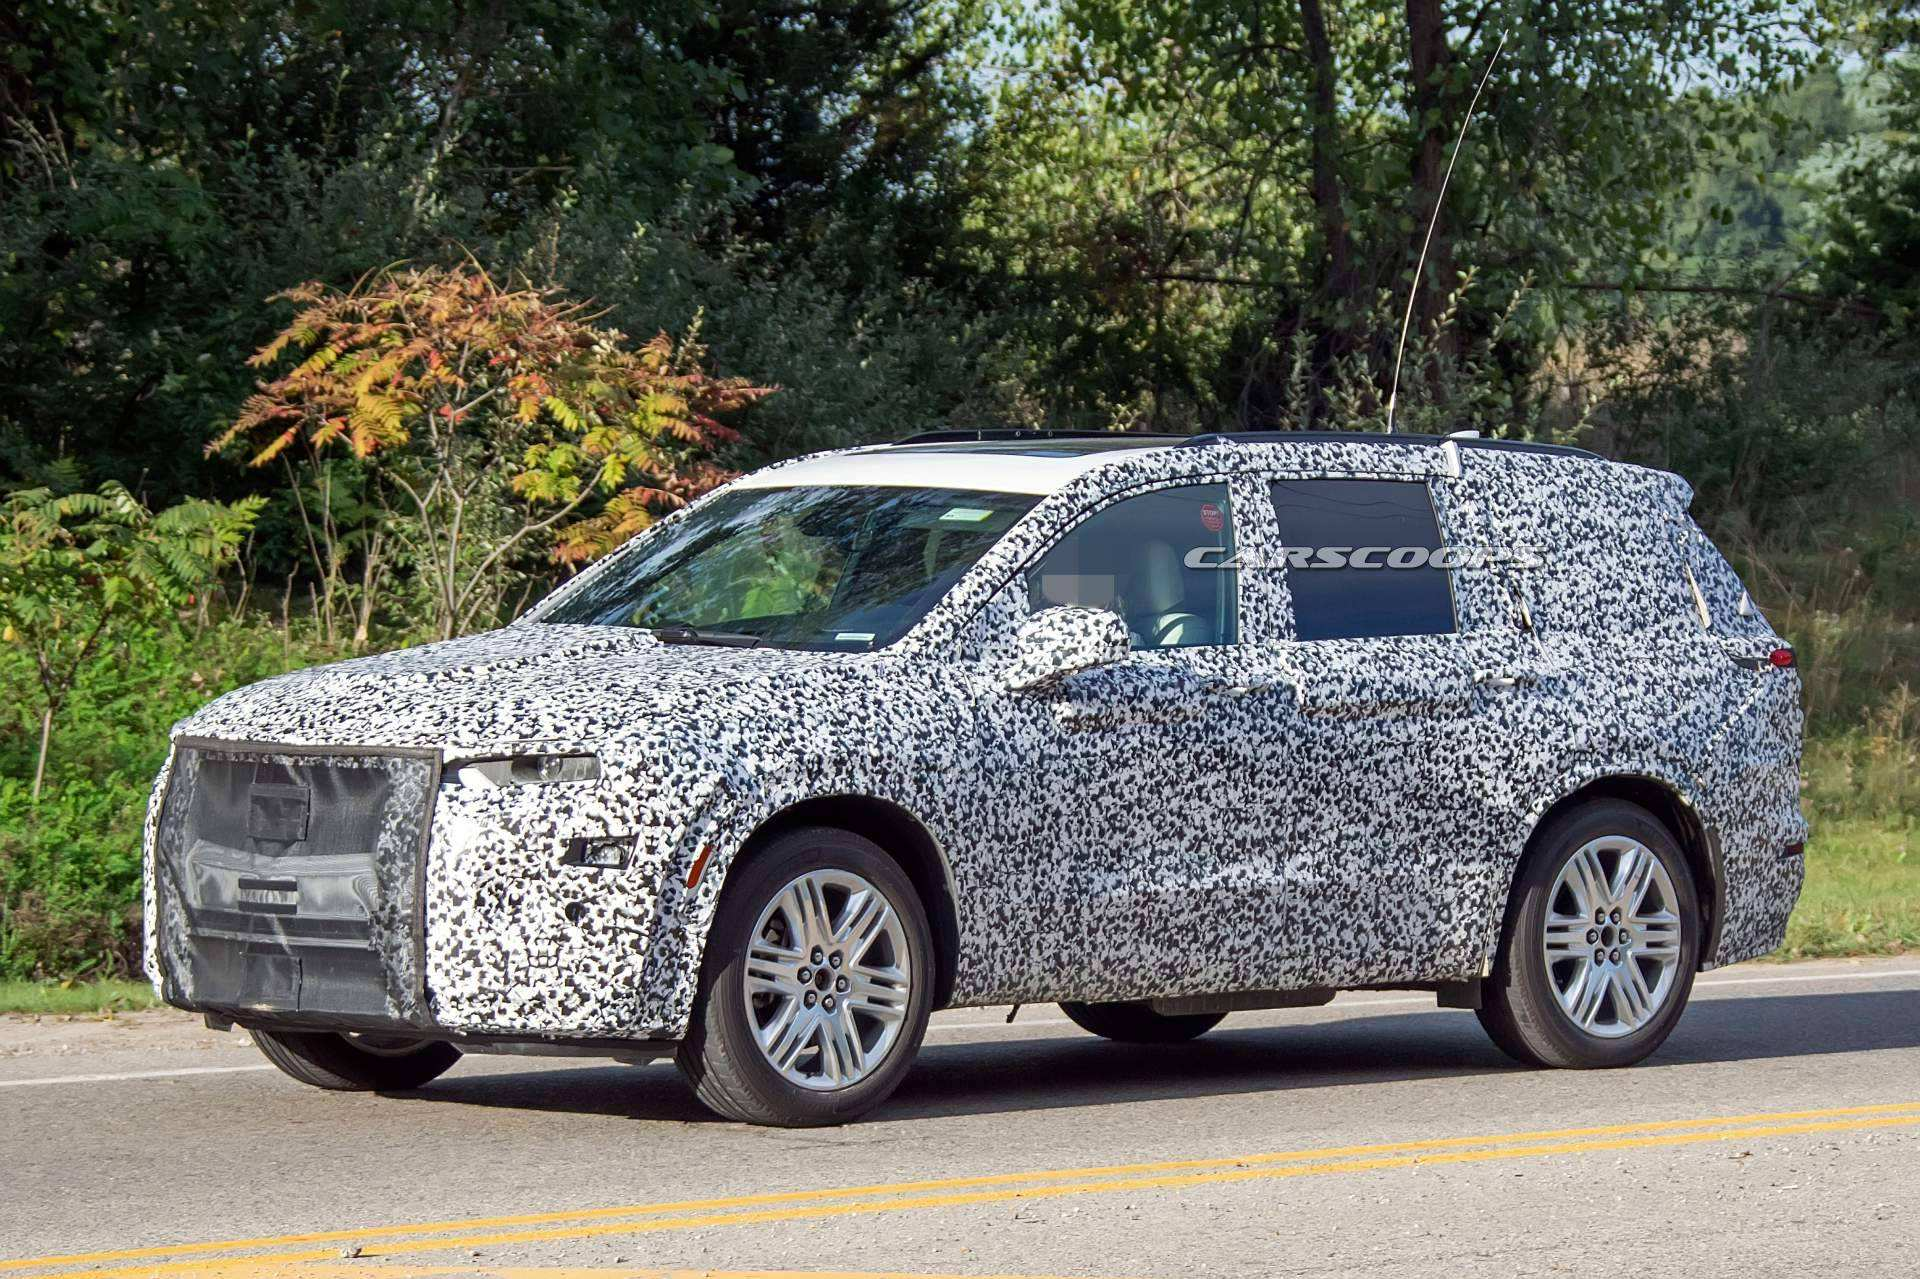 97 A Pictures Of 2020 Cadillac Escalade Redesign And Review